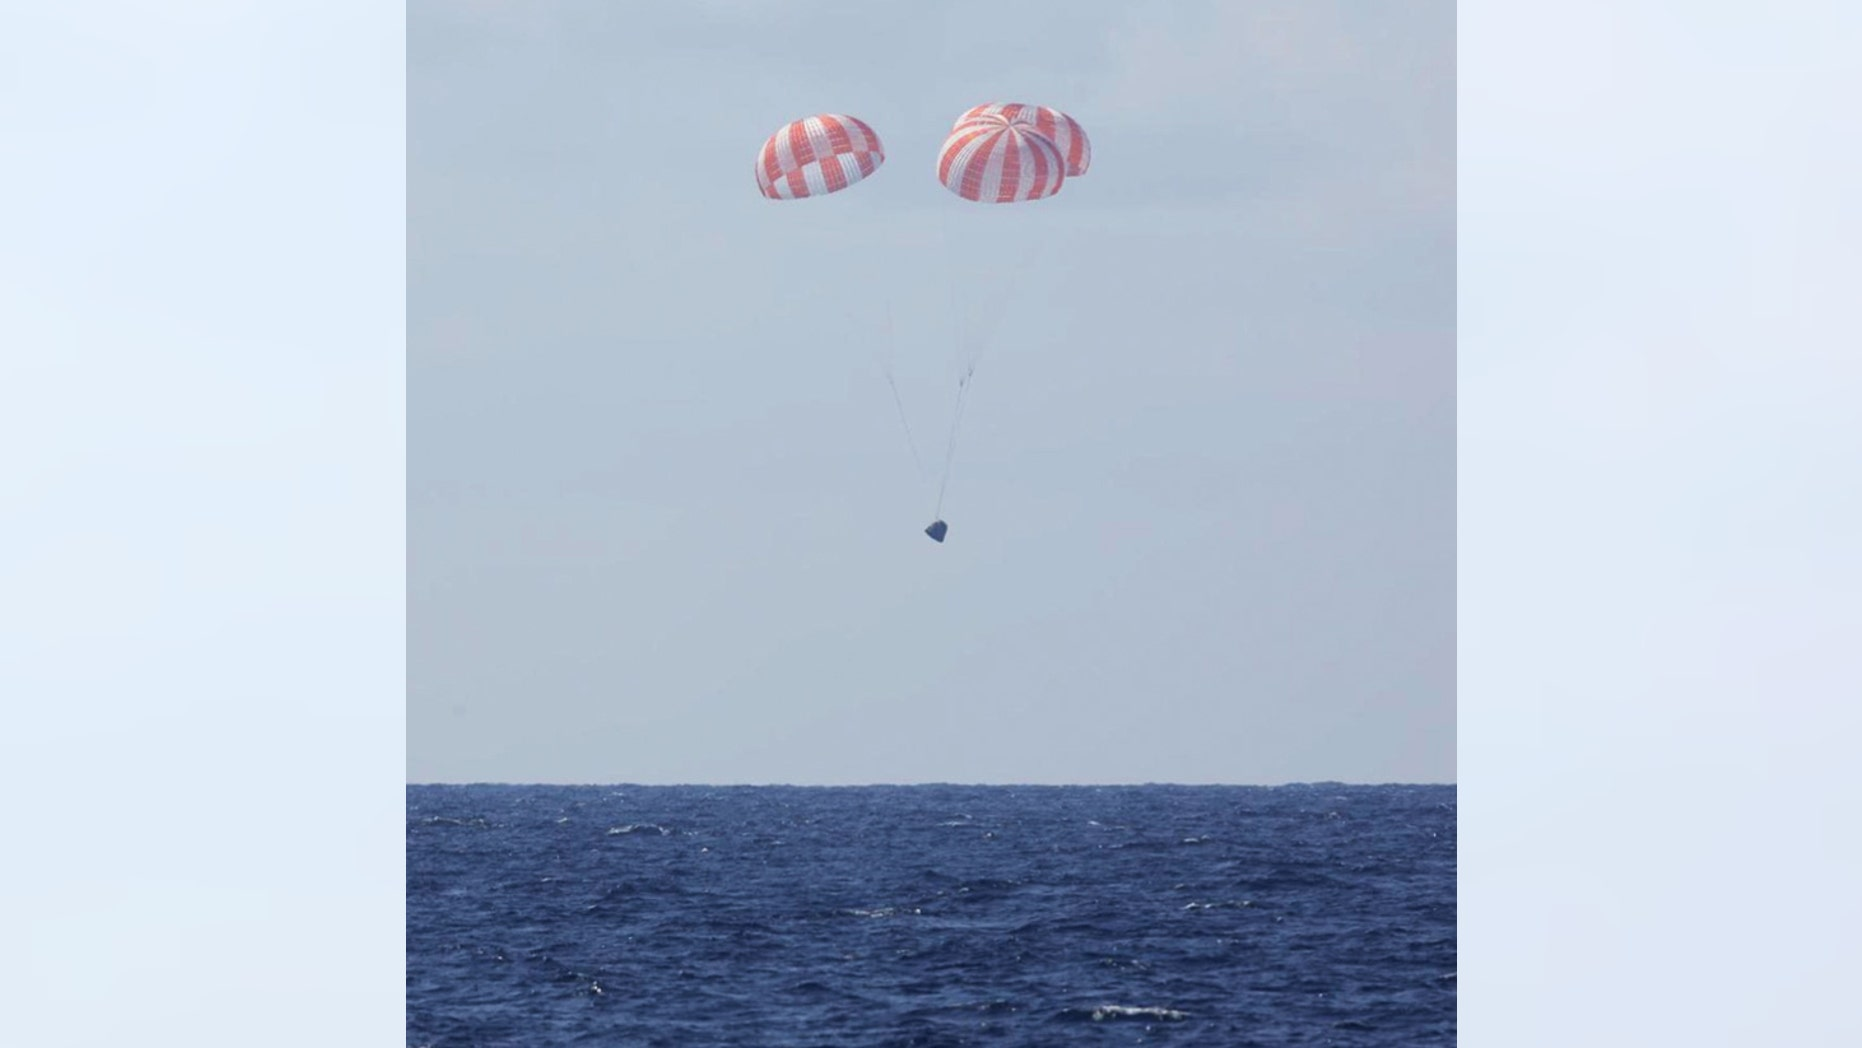 In this photo made available by SpaceX, the Dragon capsule uses parachutes to land in the Pacific Ocean near Southern California, returning from the International Space Station in orbit on Thursday, May 21, 2015.